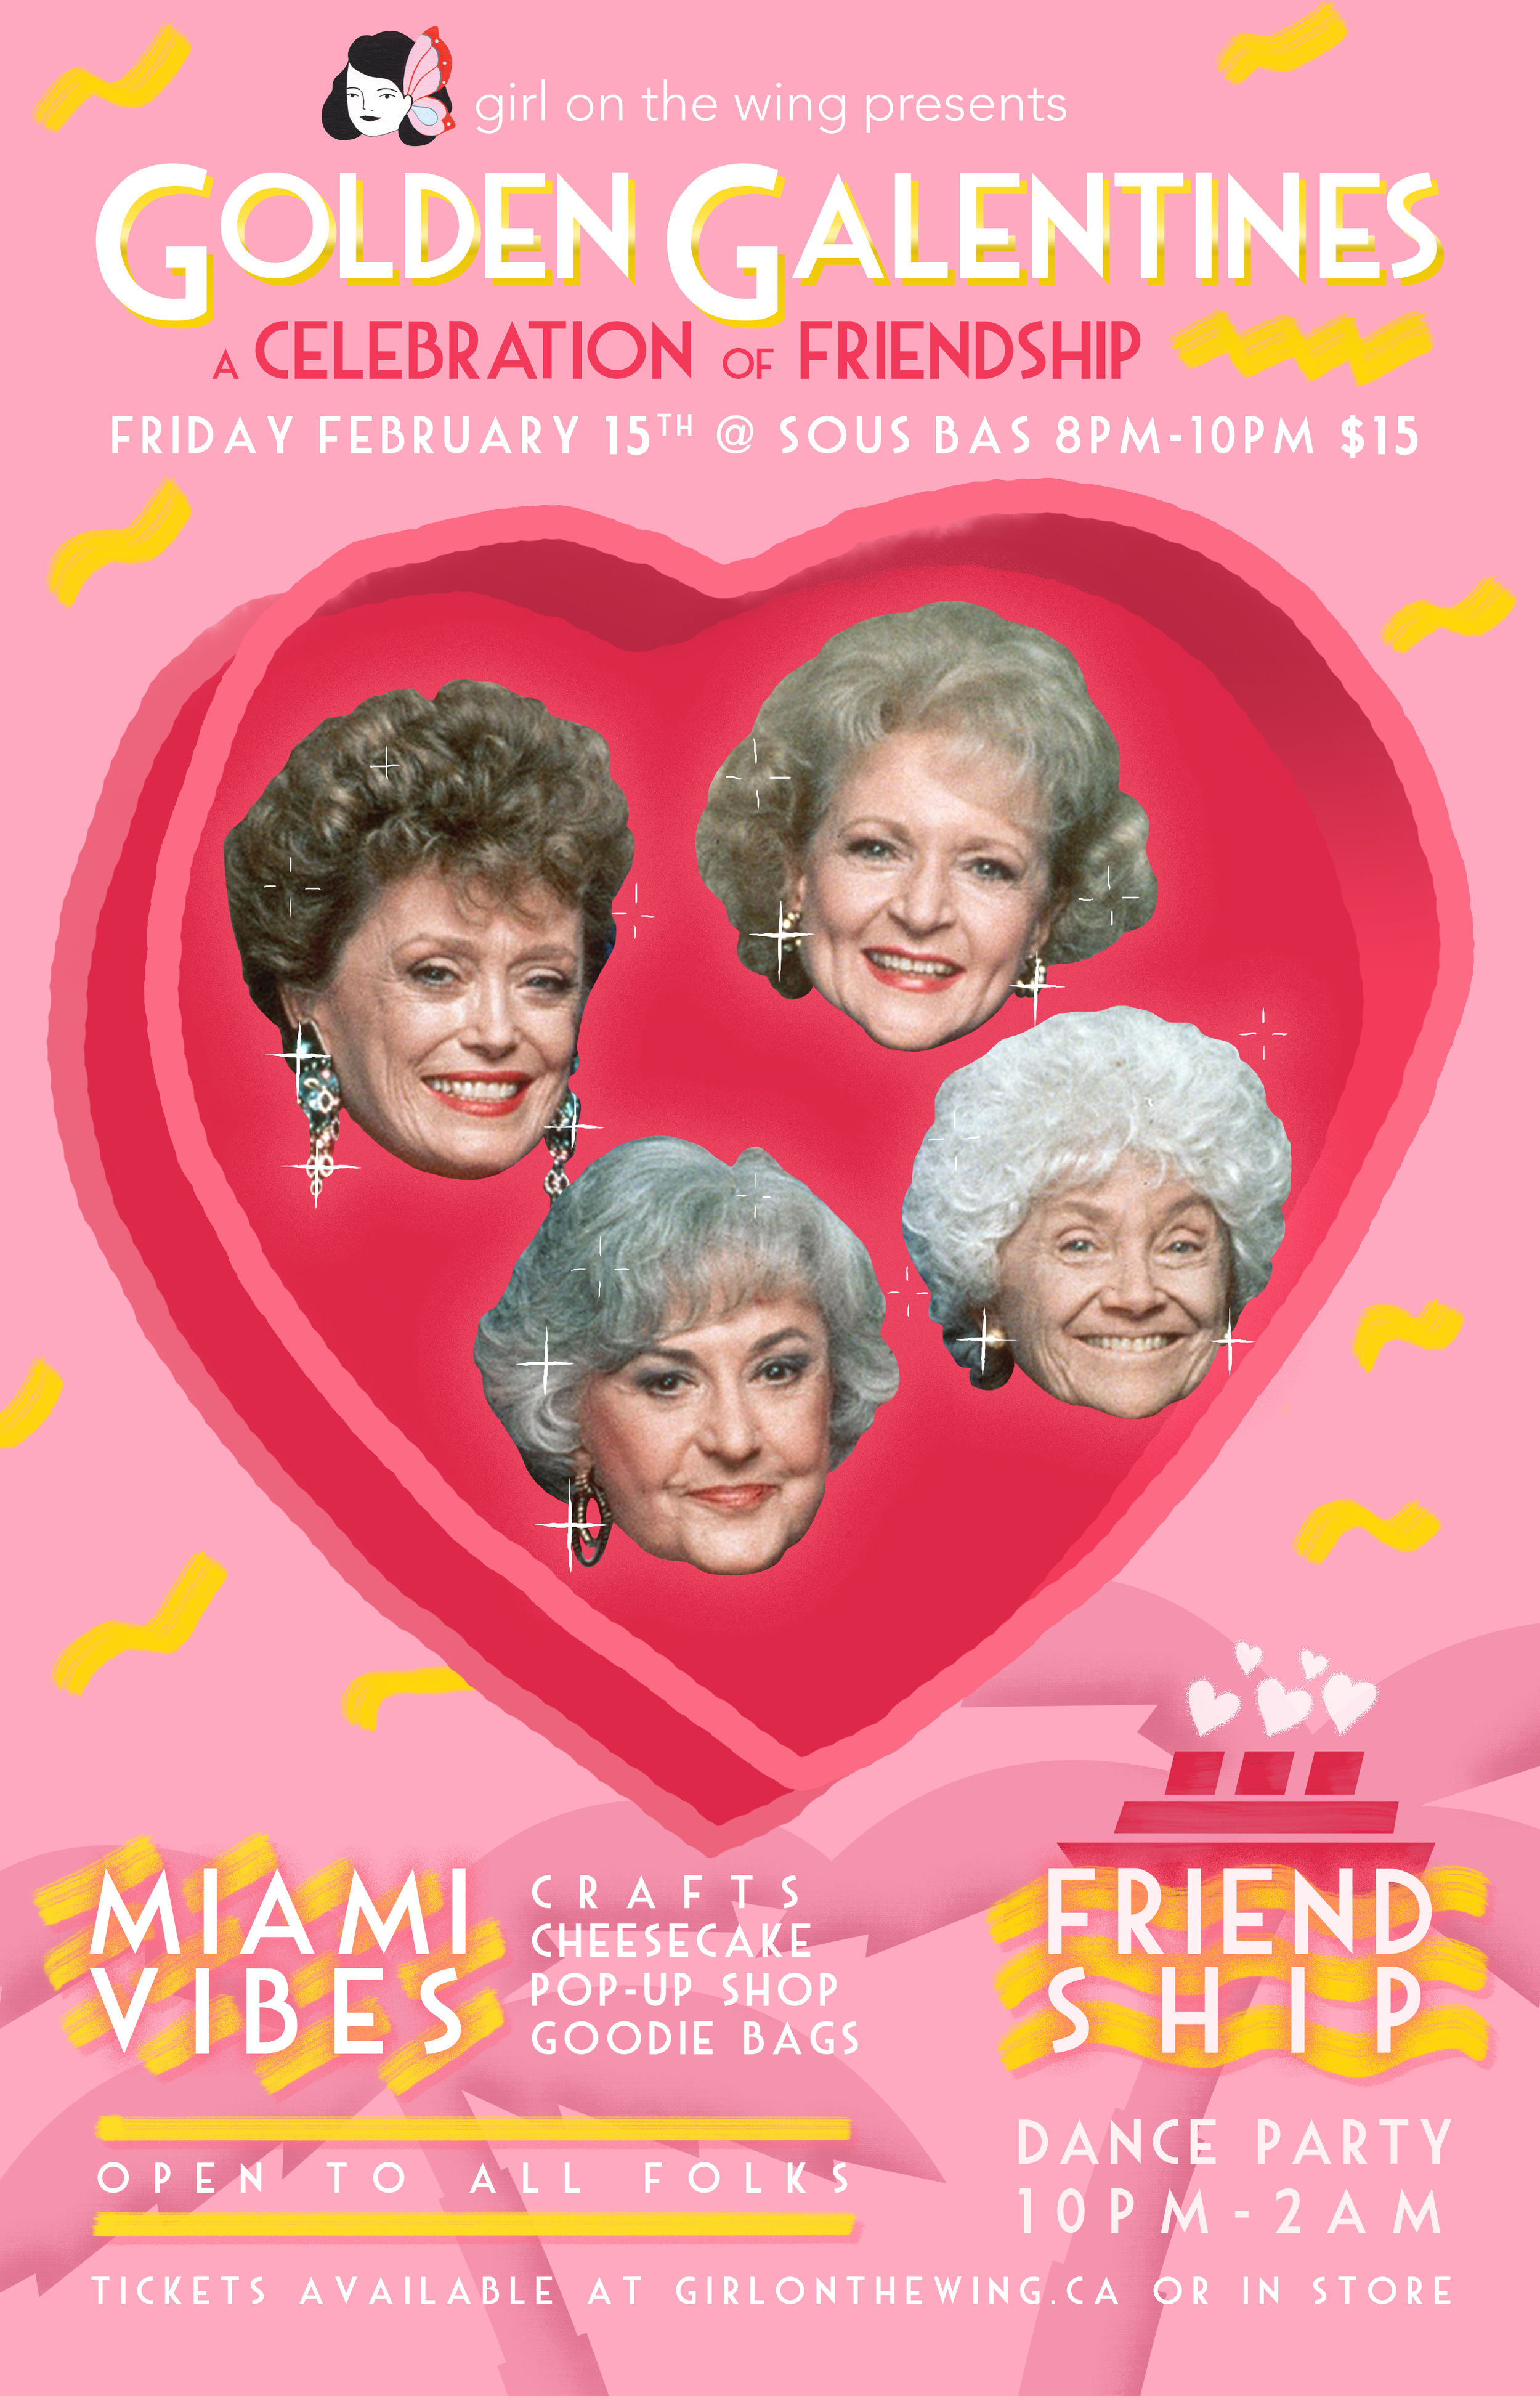 Poster for Golden Galentines party, a community gathering alternative to the typical Valentine's day event.